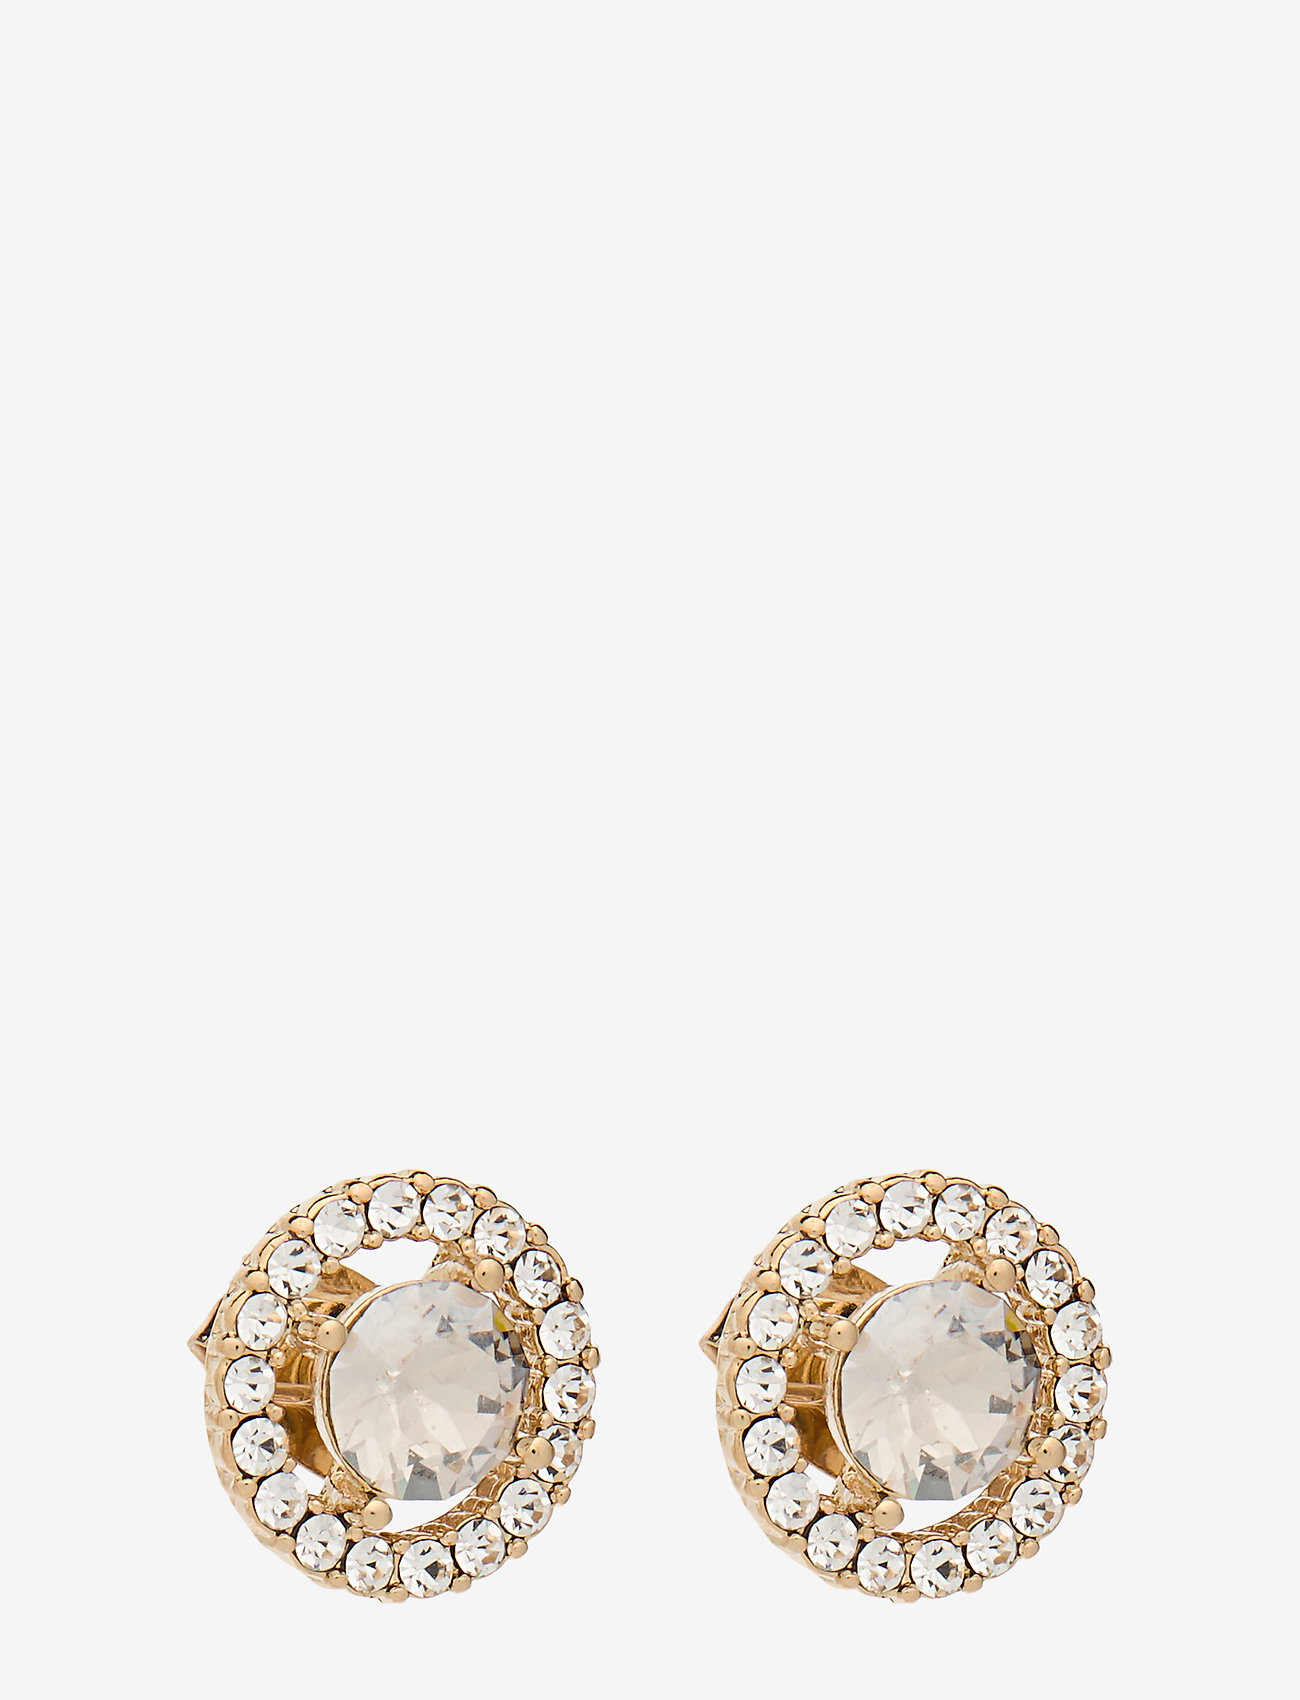 LILY AND ROSE - Miss Miranda earrings - Silvershade (Gold) - studs - silvershade - 1